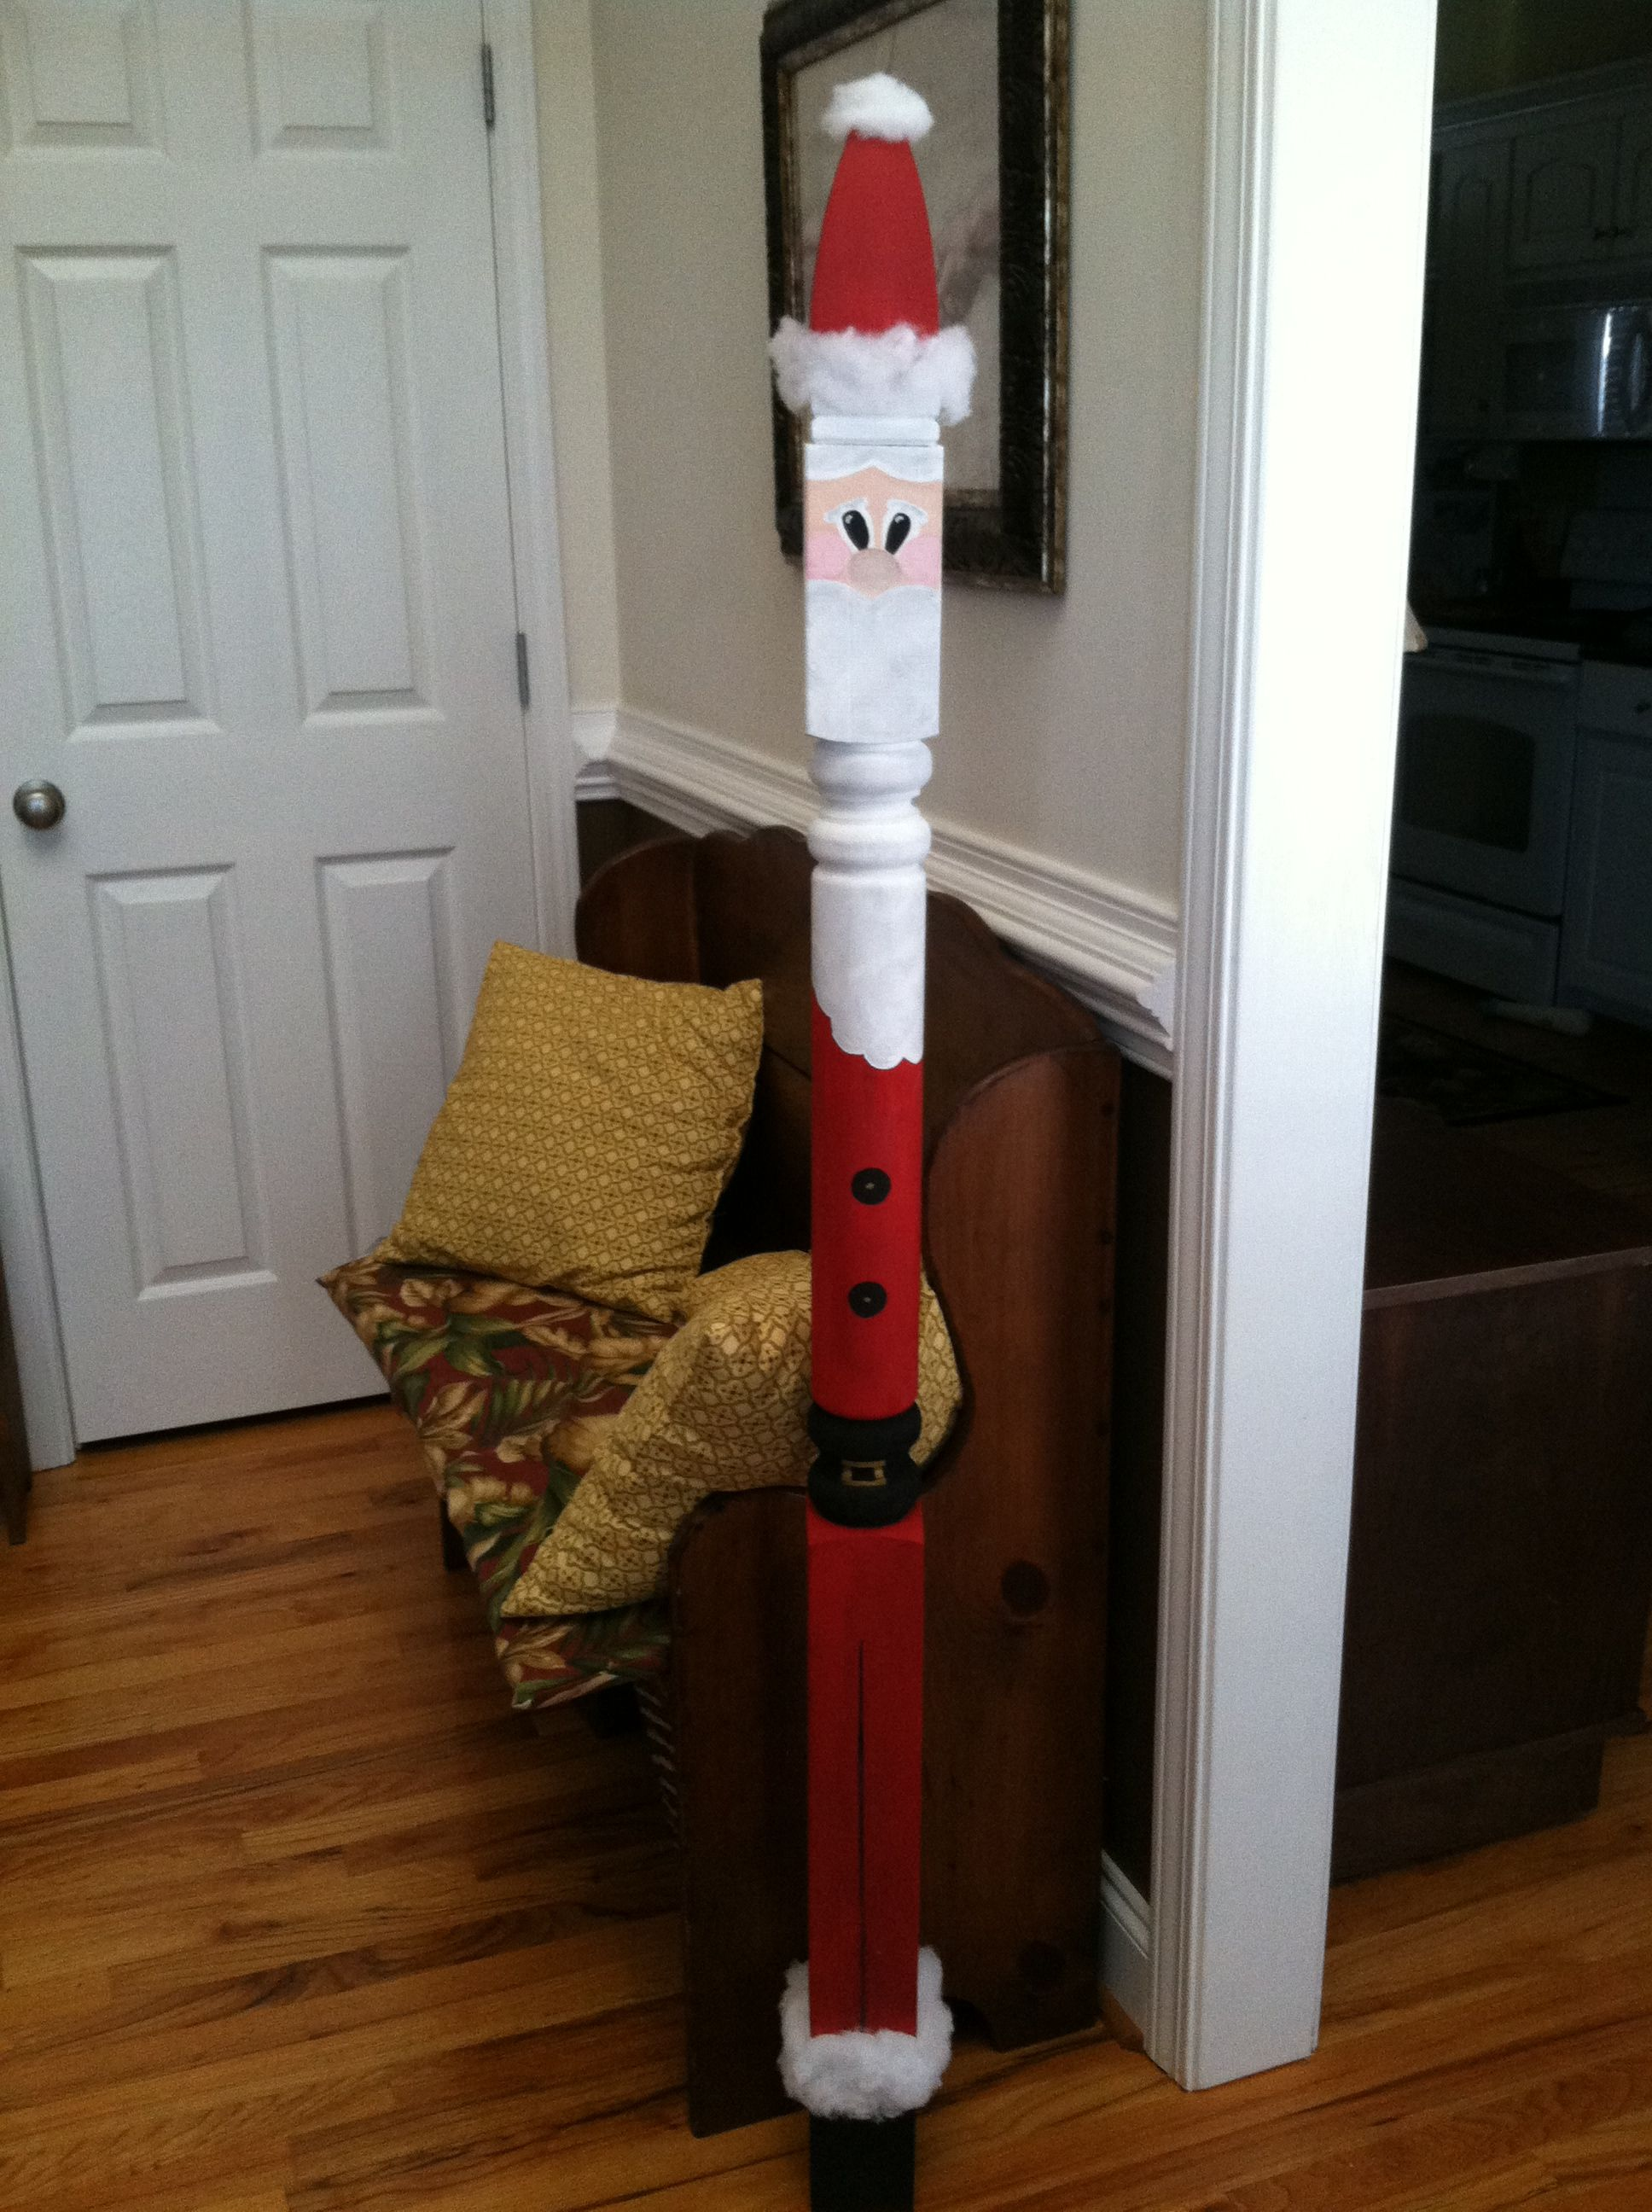 Fence Post Painted To Look Like Santa Fence Post